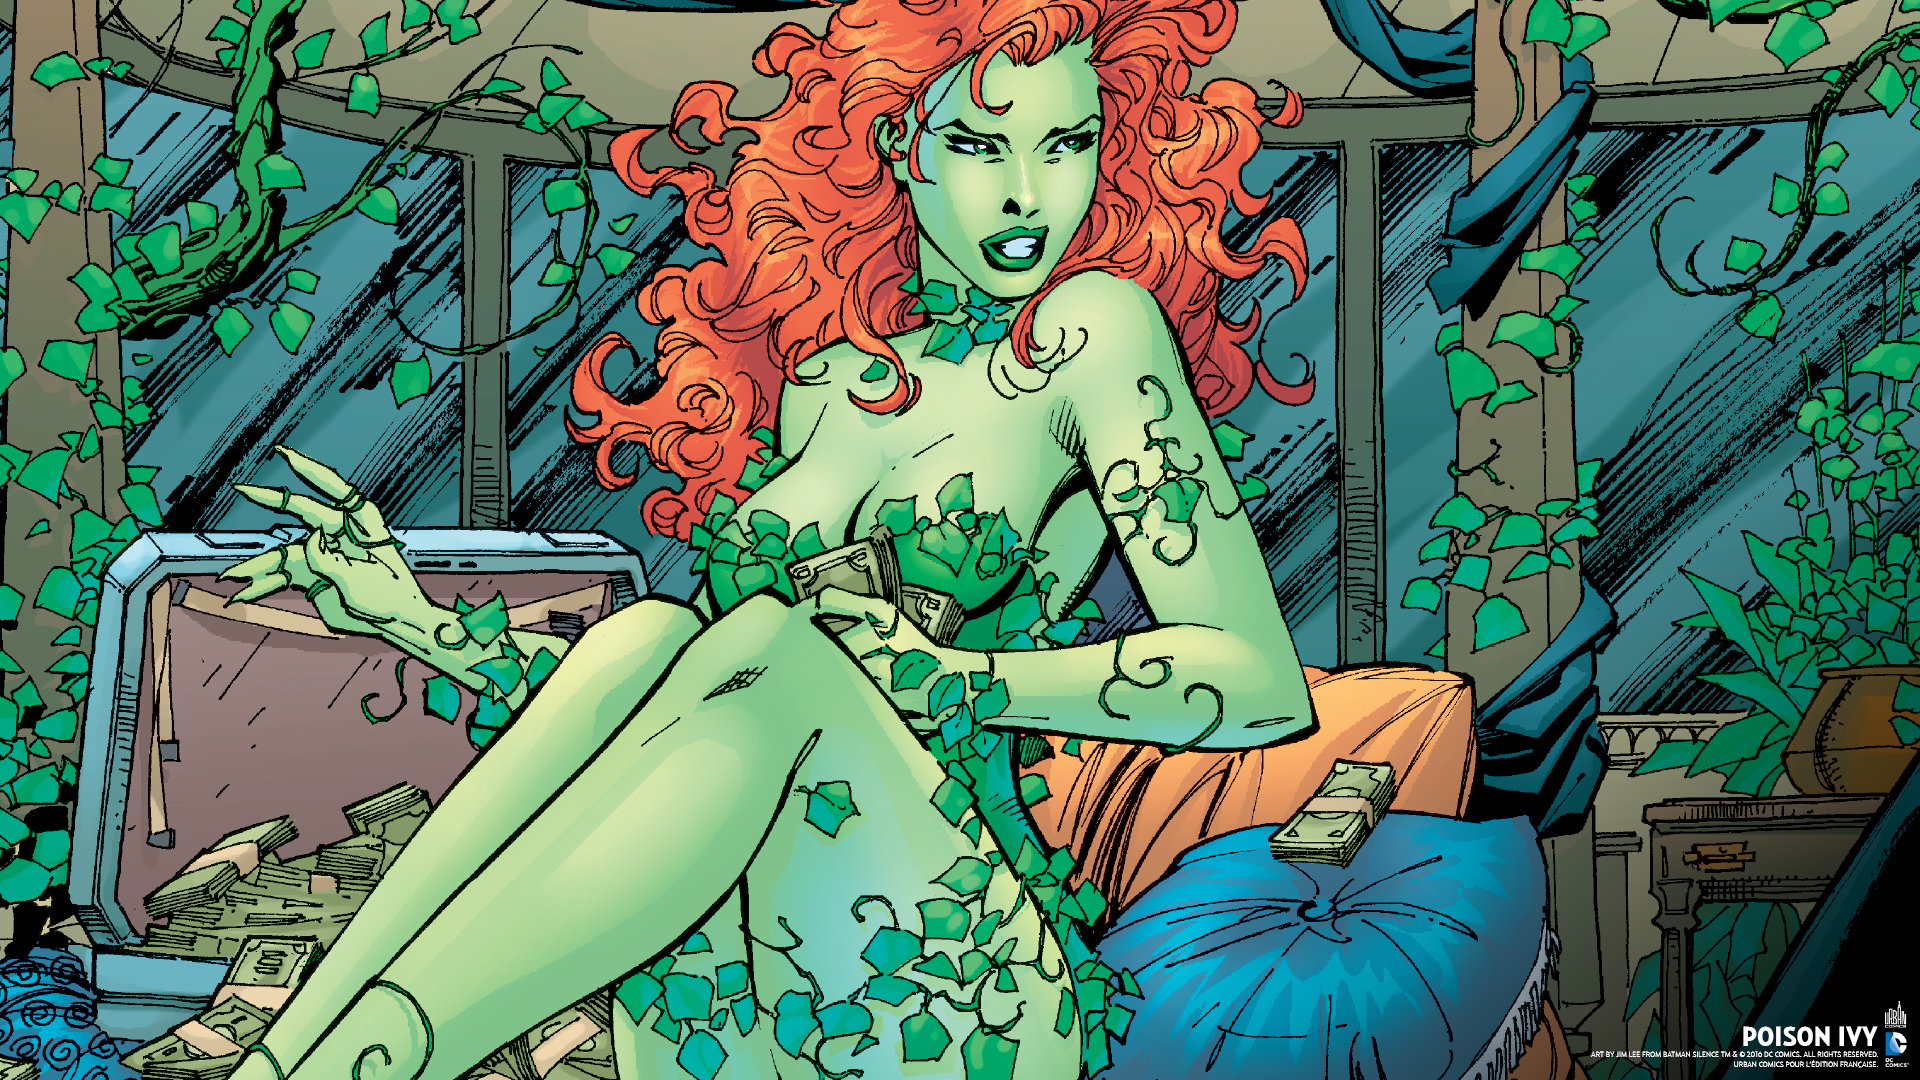 The Joker Animated Wallpaper Wallpapers Poison Ivy Urban Comics